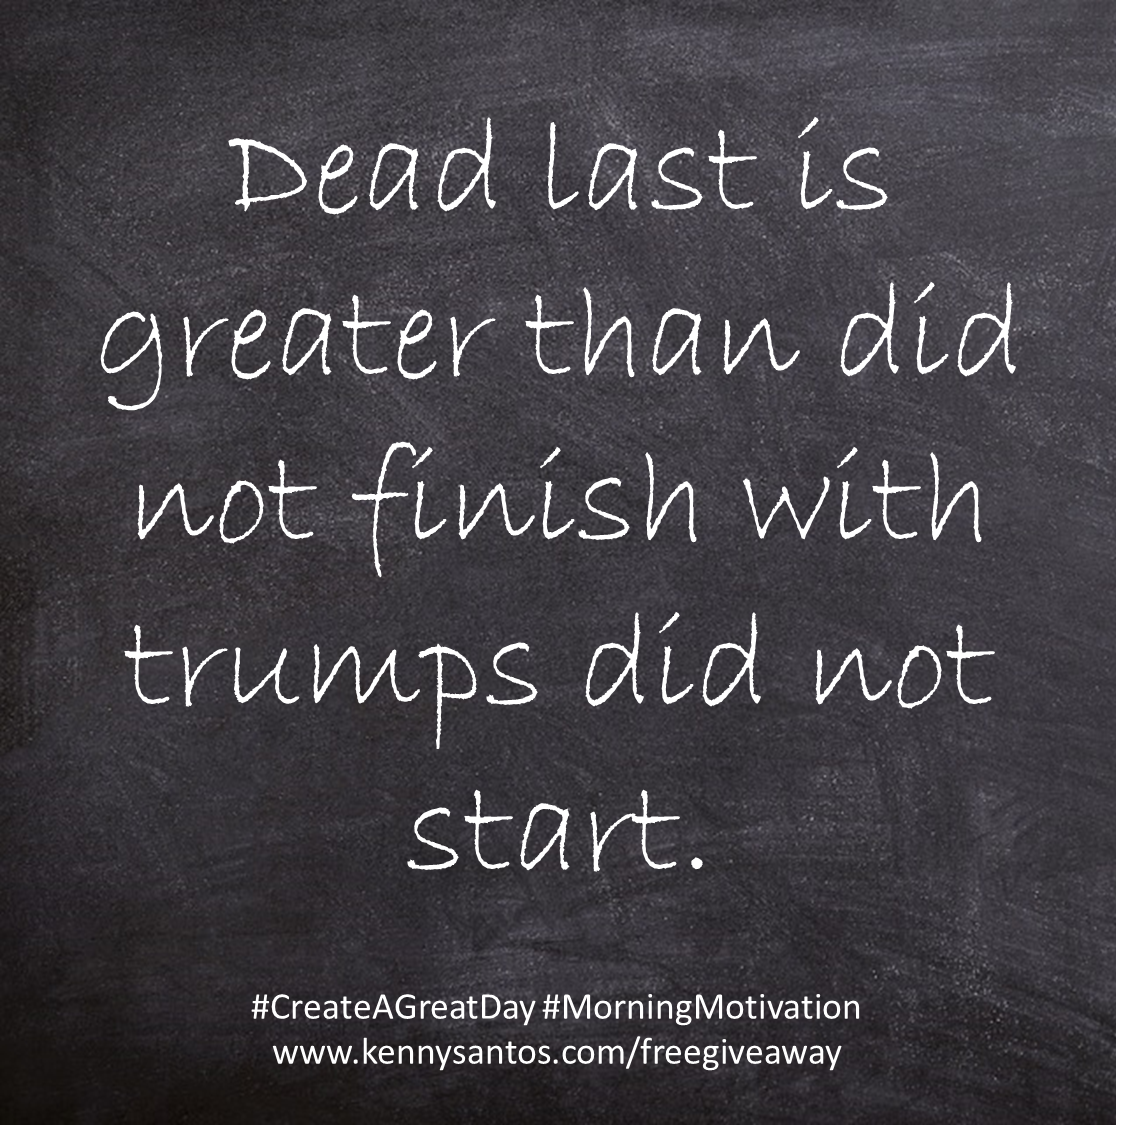 Happy Thursday!   You must try.   Create A Great Day!  #createagreatday #successquotes #morningmotivation   http:// kennysantos.com/freegiveaway  &nbsp;  <br>http://pic.twitter.com/R6woOjycve